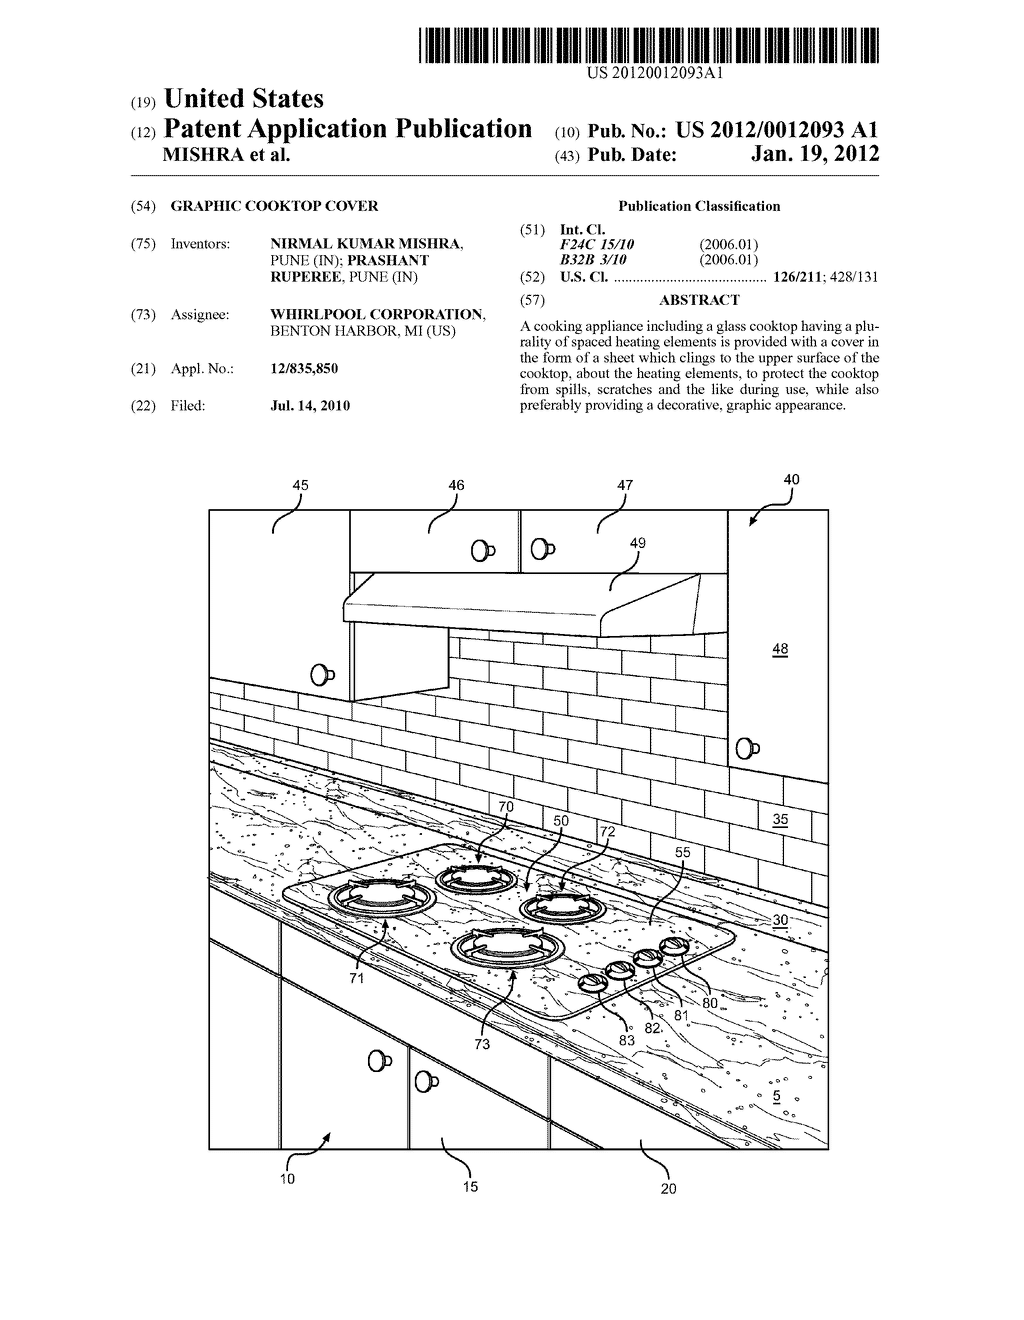 GRAPHIC COOKTOP COVER - diagram, schematic, and image 01